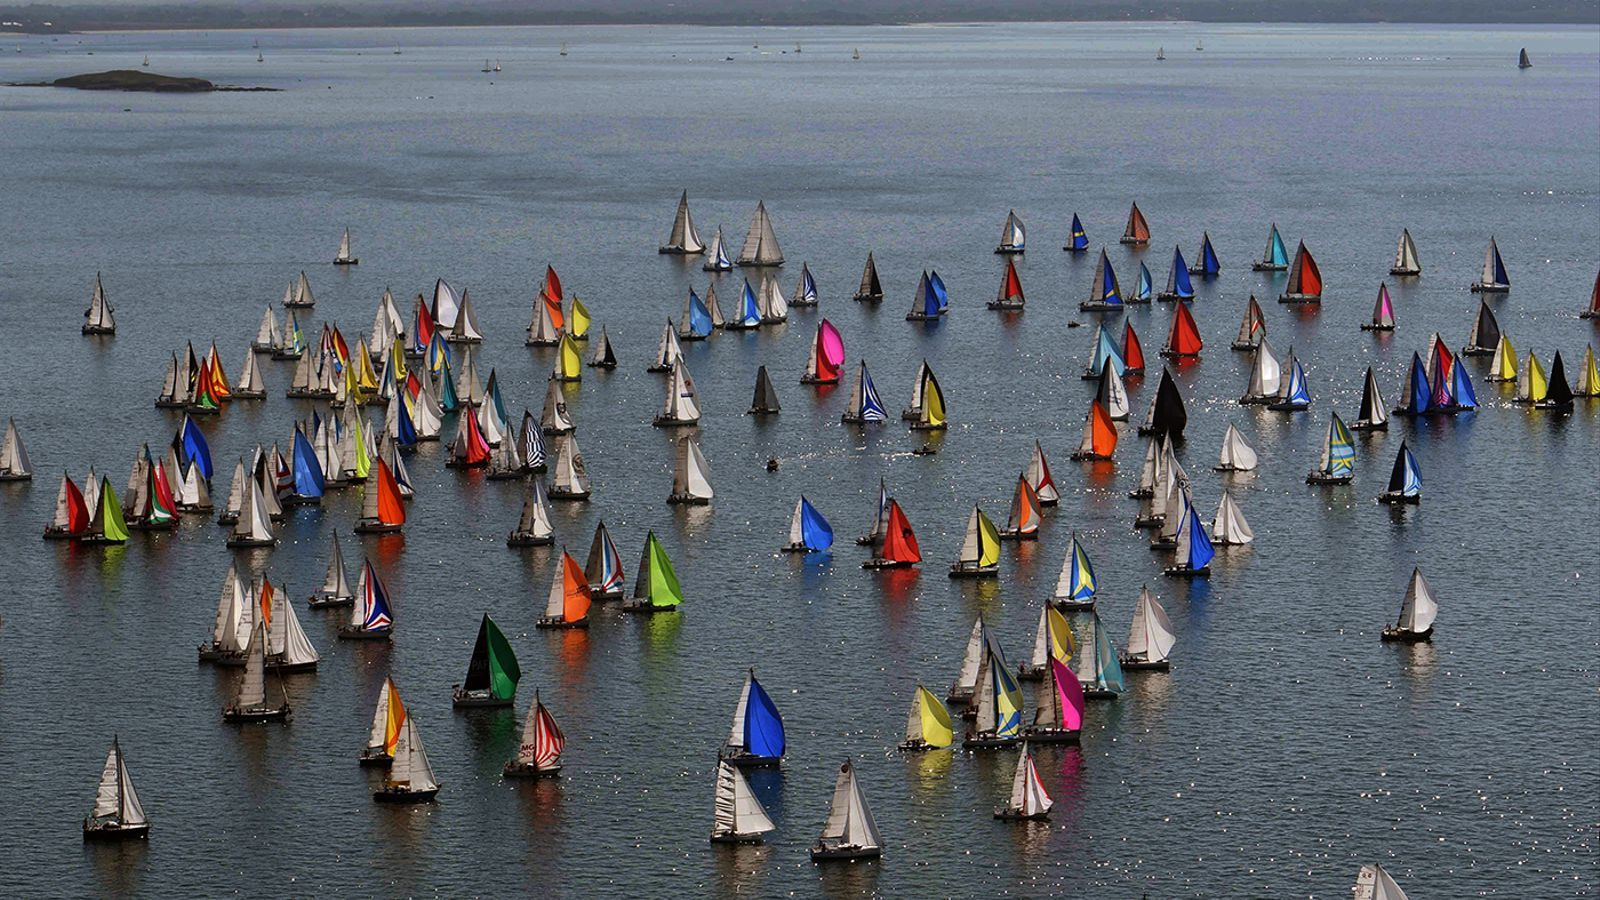 Sailing competition in La Trinité-sur-Mer, west of France